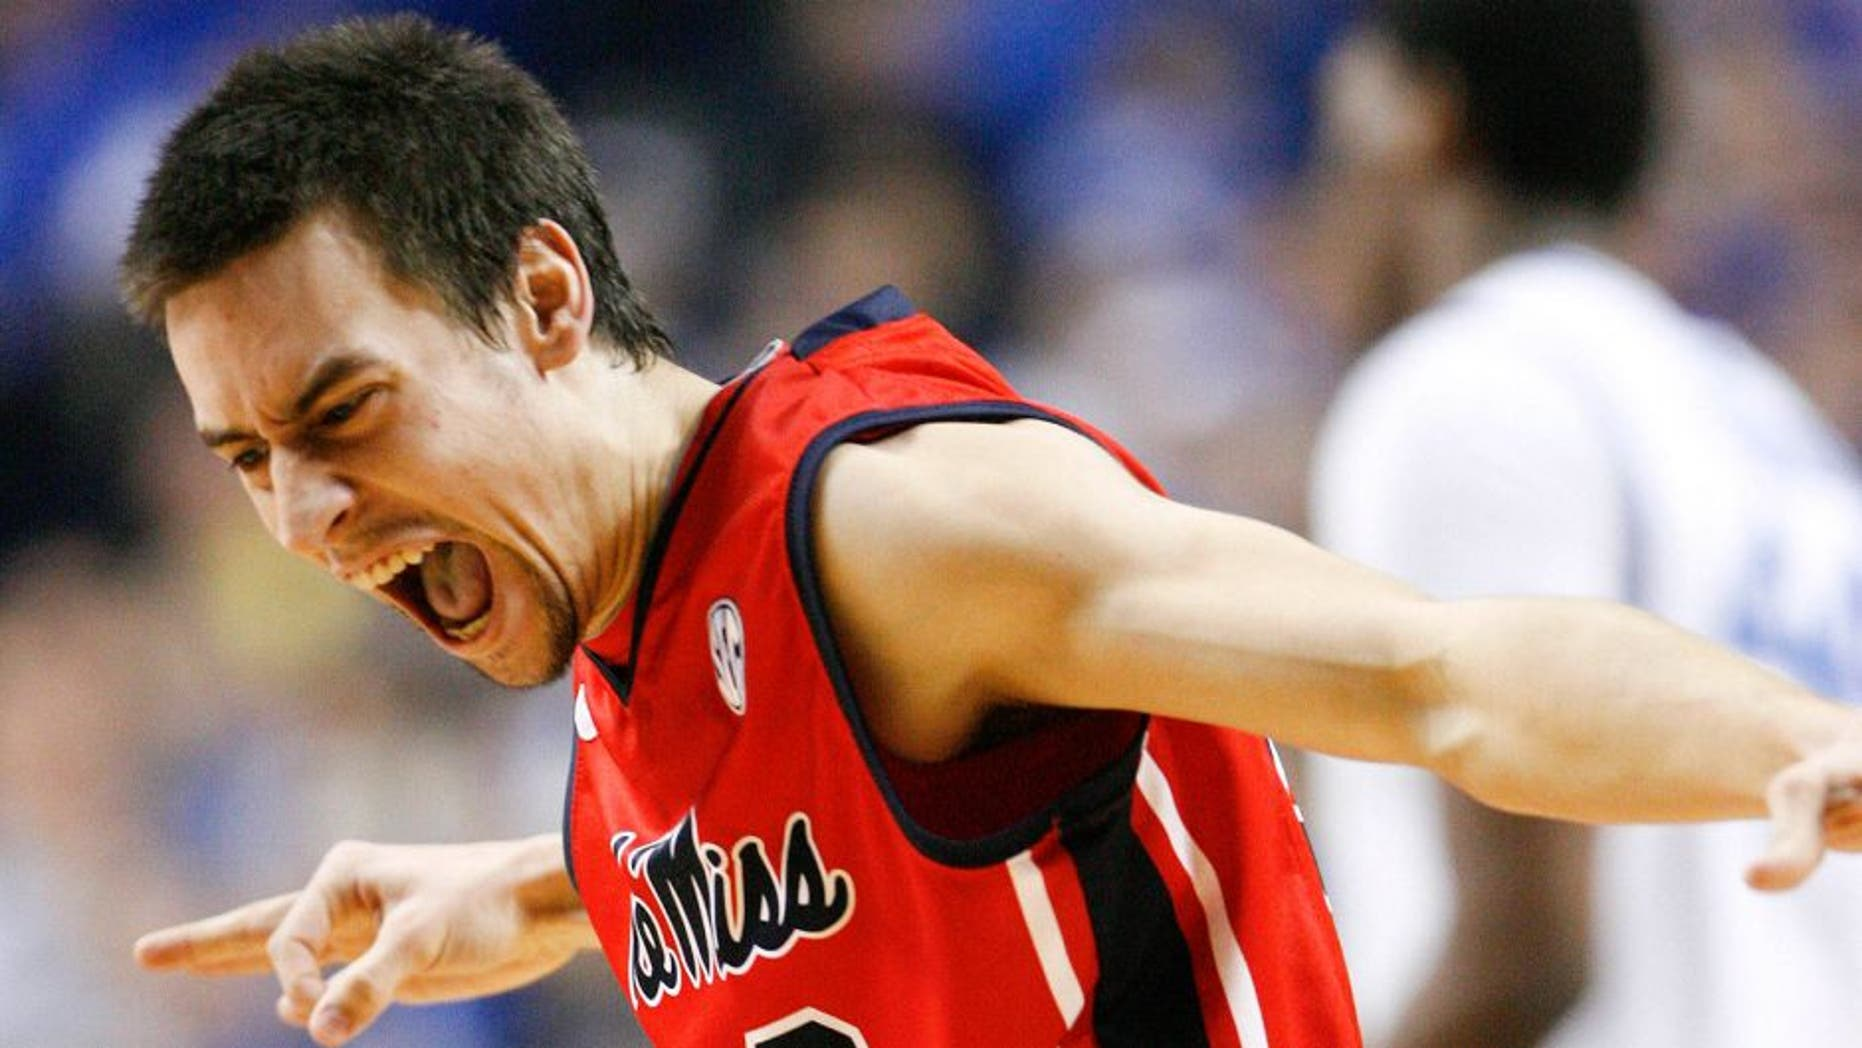 Feb 4, 2014; Lexington, KY, USA; Mississippi Rebels guard Marshall Henderson (22) reacts during the game against the Kentucky Wildcats at Rupp Arena. Mandatory Credit: Mark Zerof-USA TODAY Sports